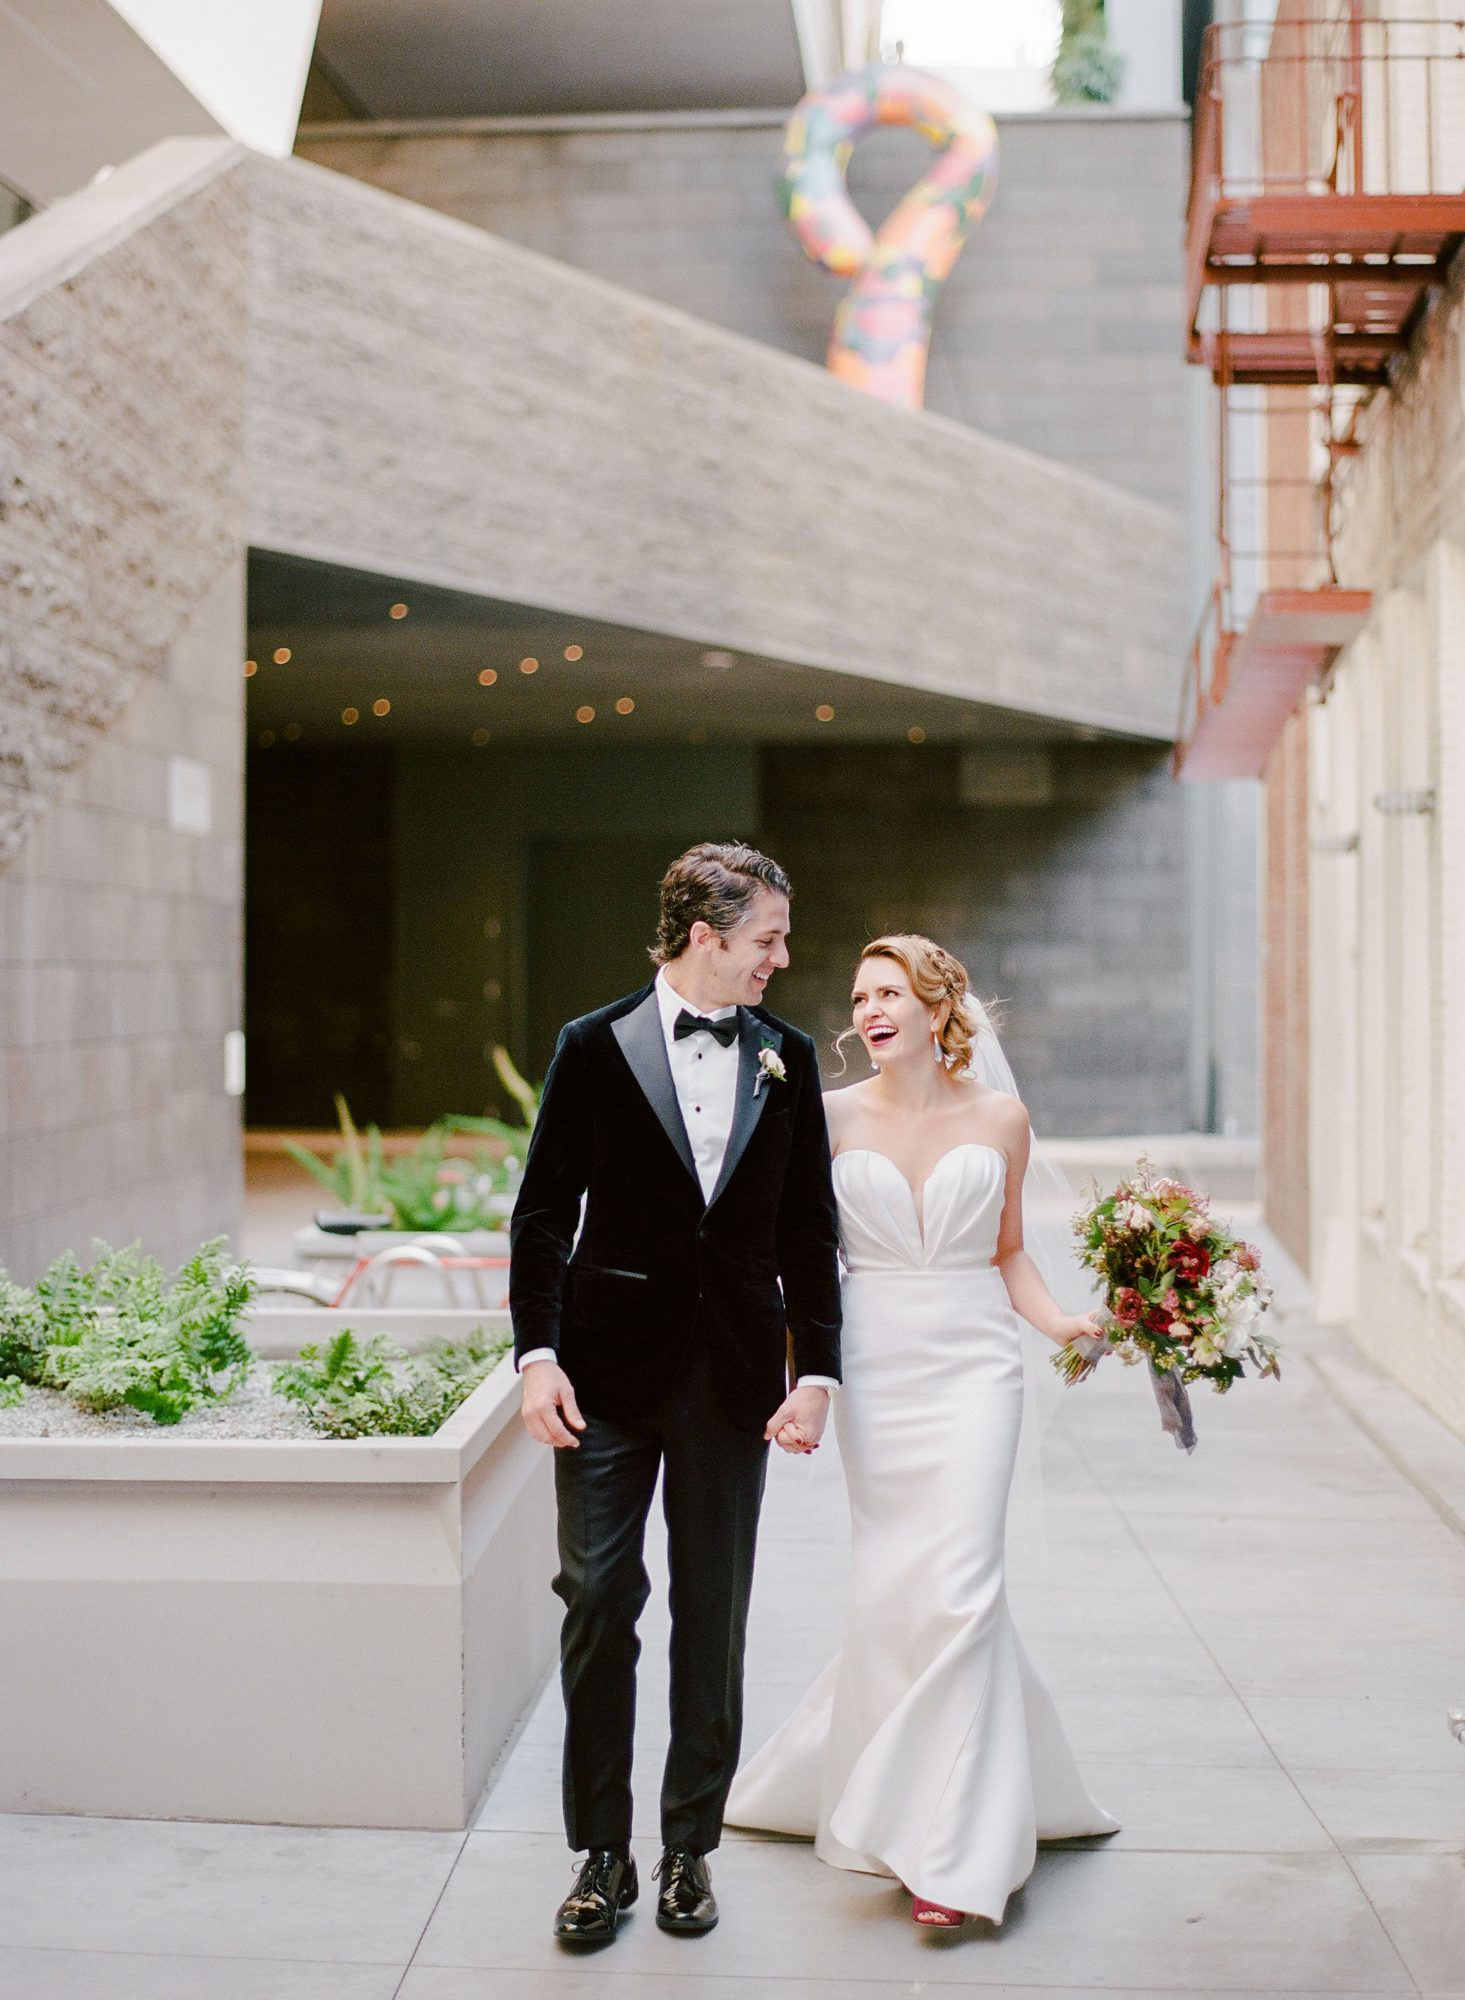 katie andre wedding couple walking laughing